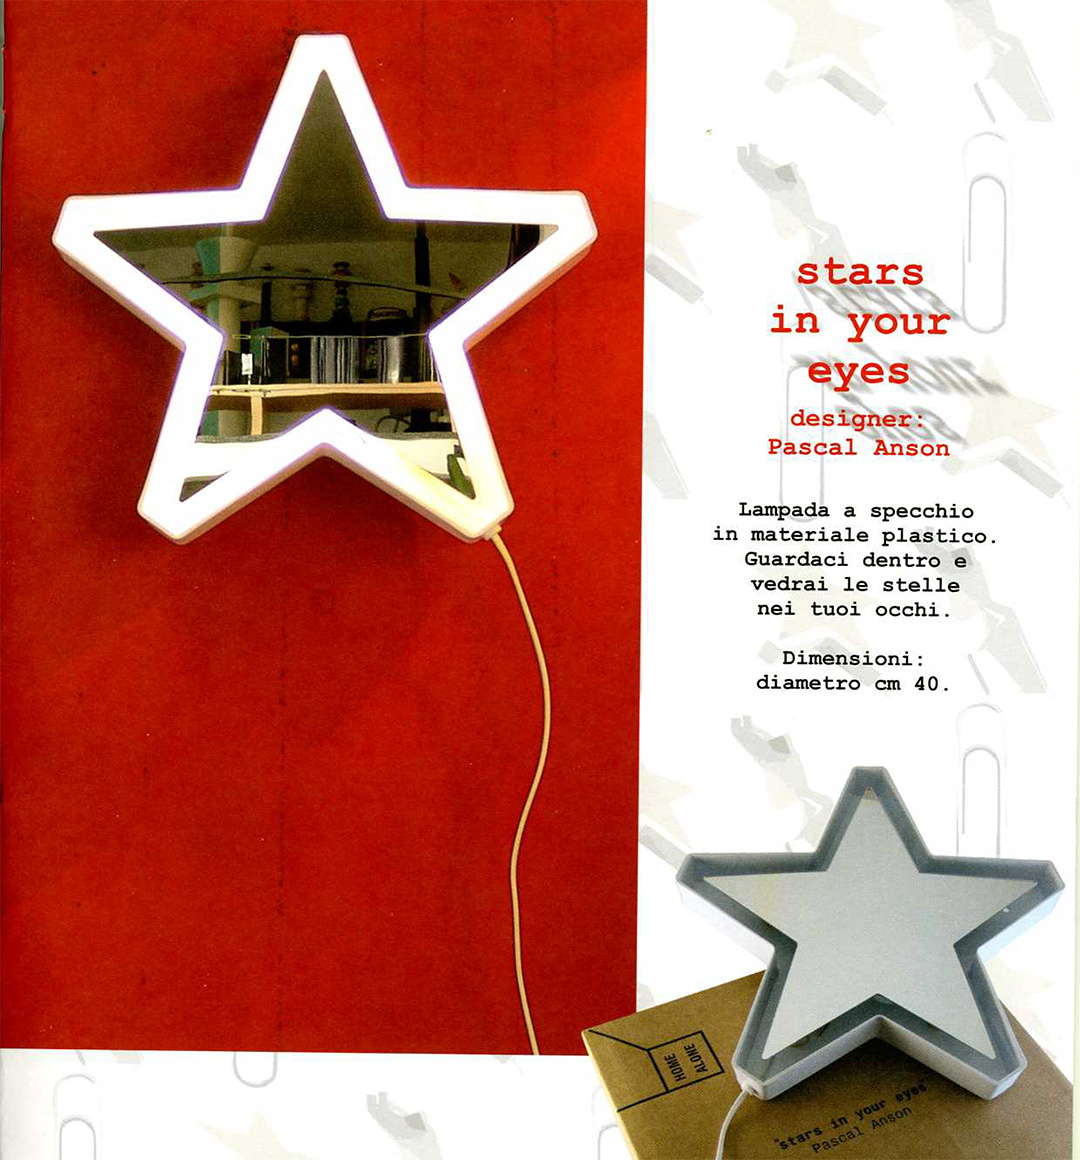 Stars in your eyes, Pascal Anson, Post Design